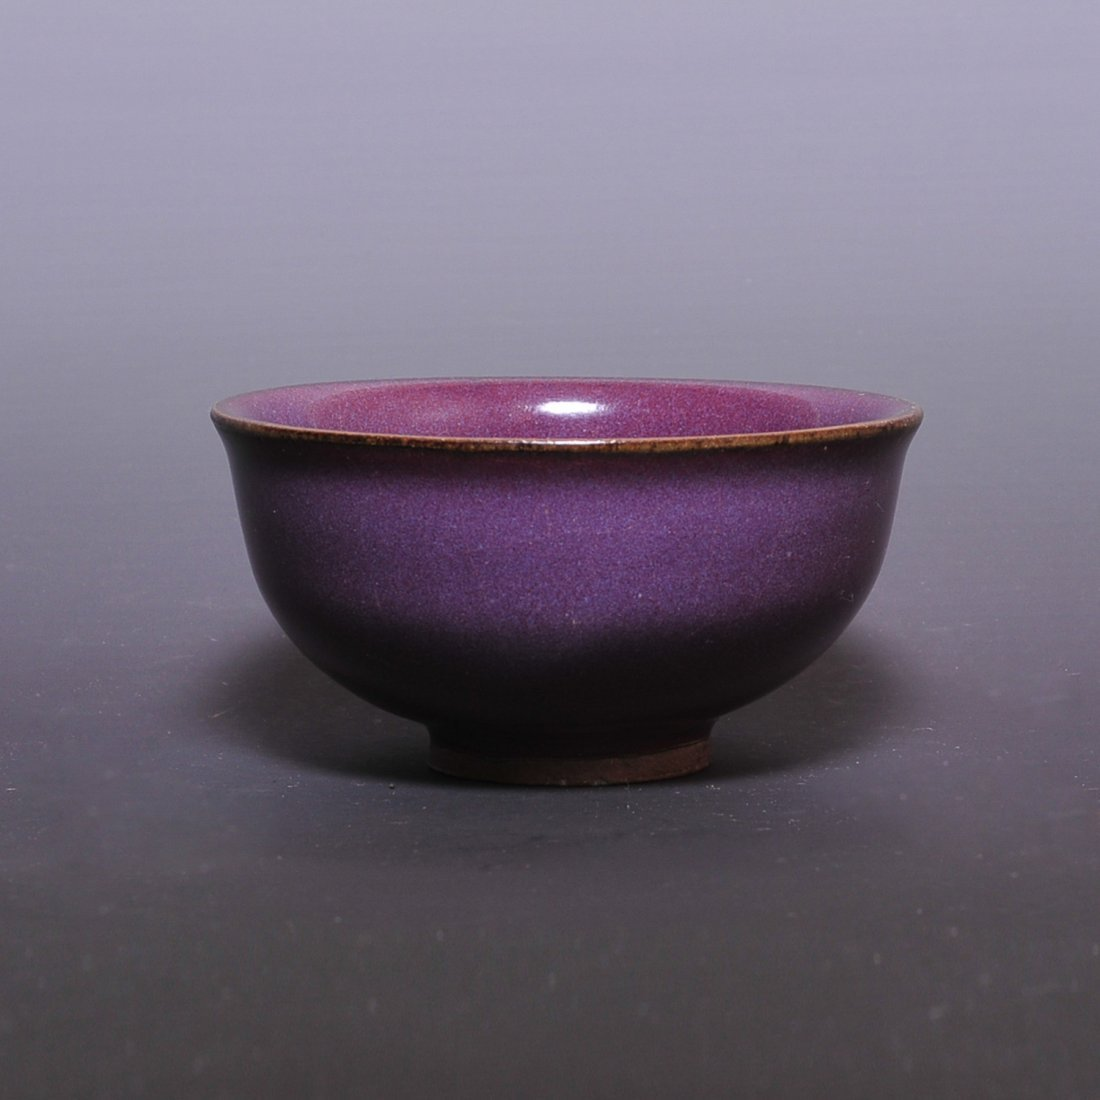 Ming Dynasty, A rose-purple bowl